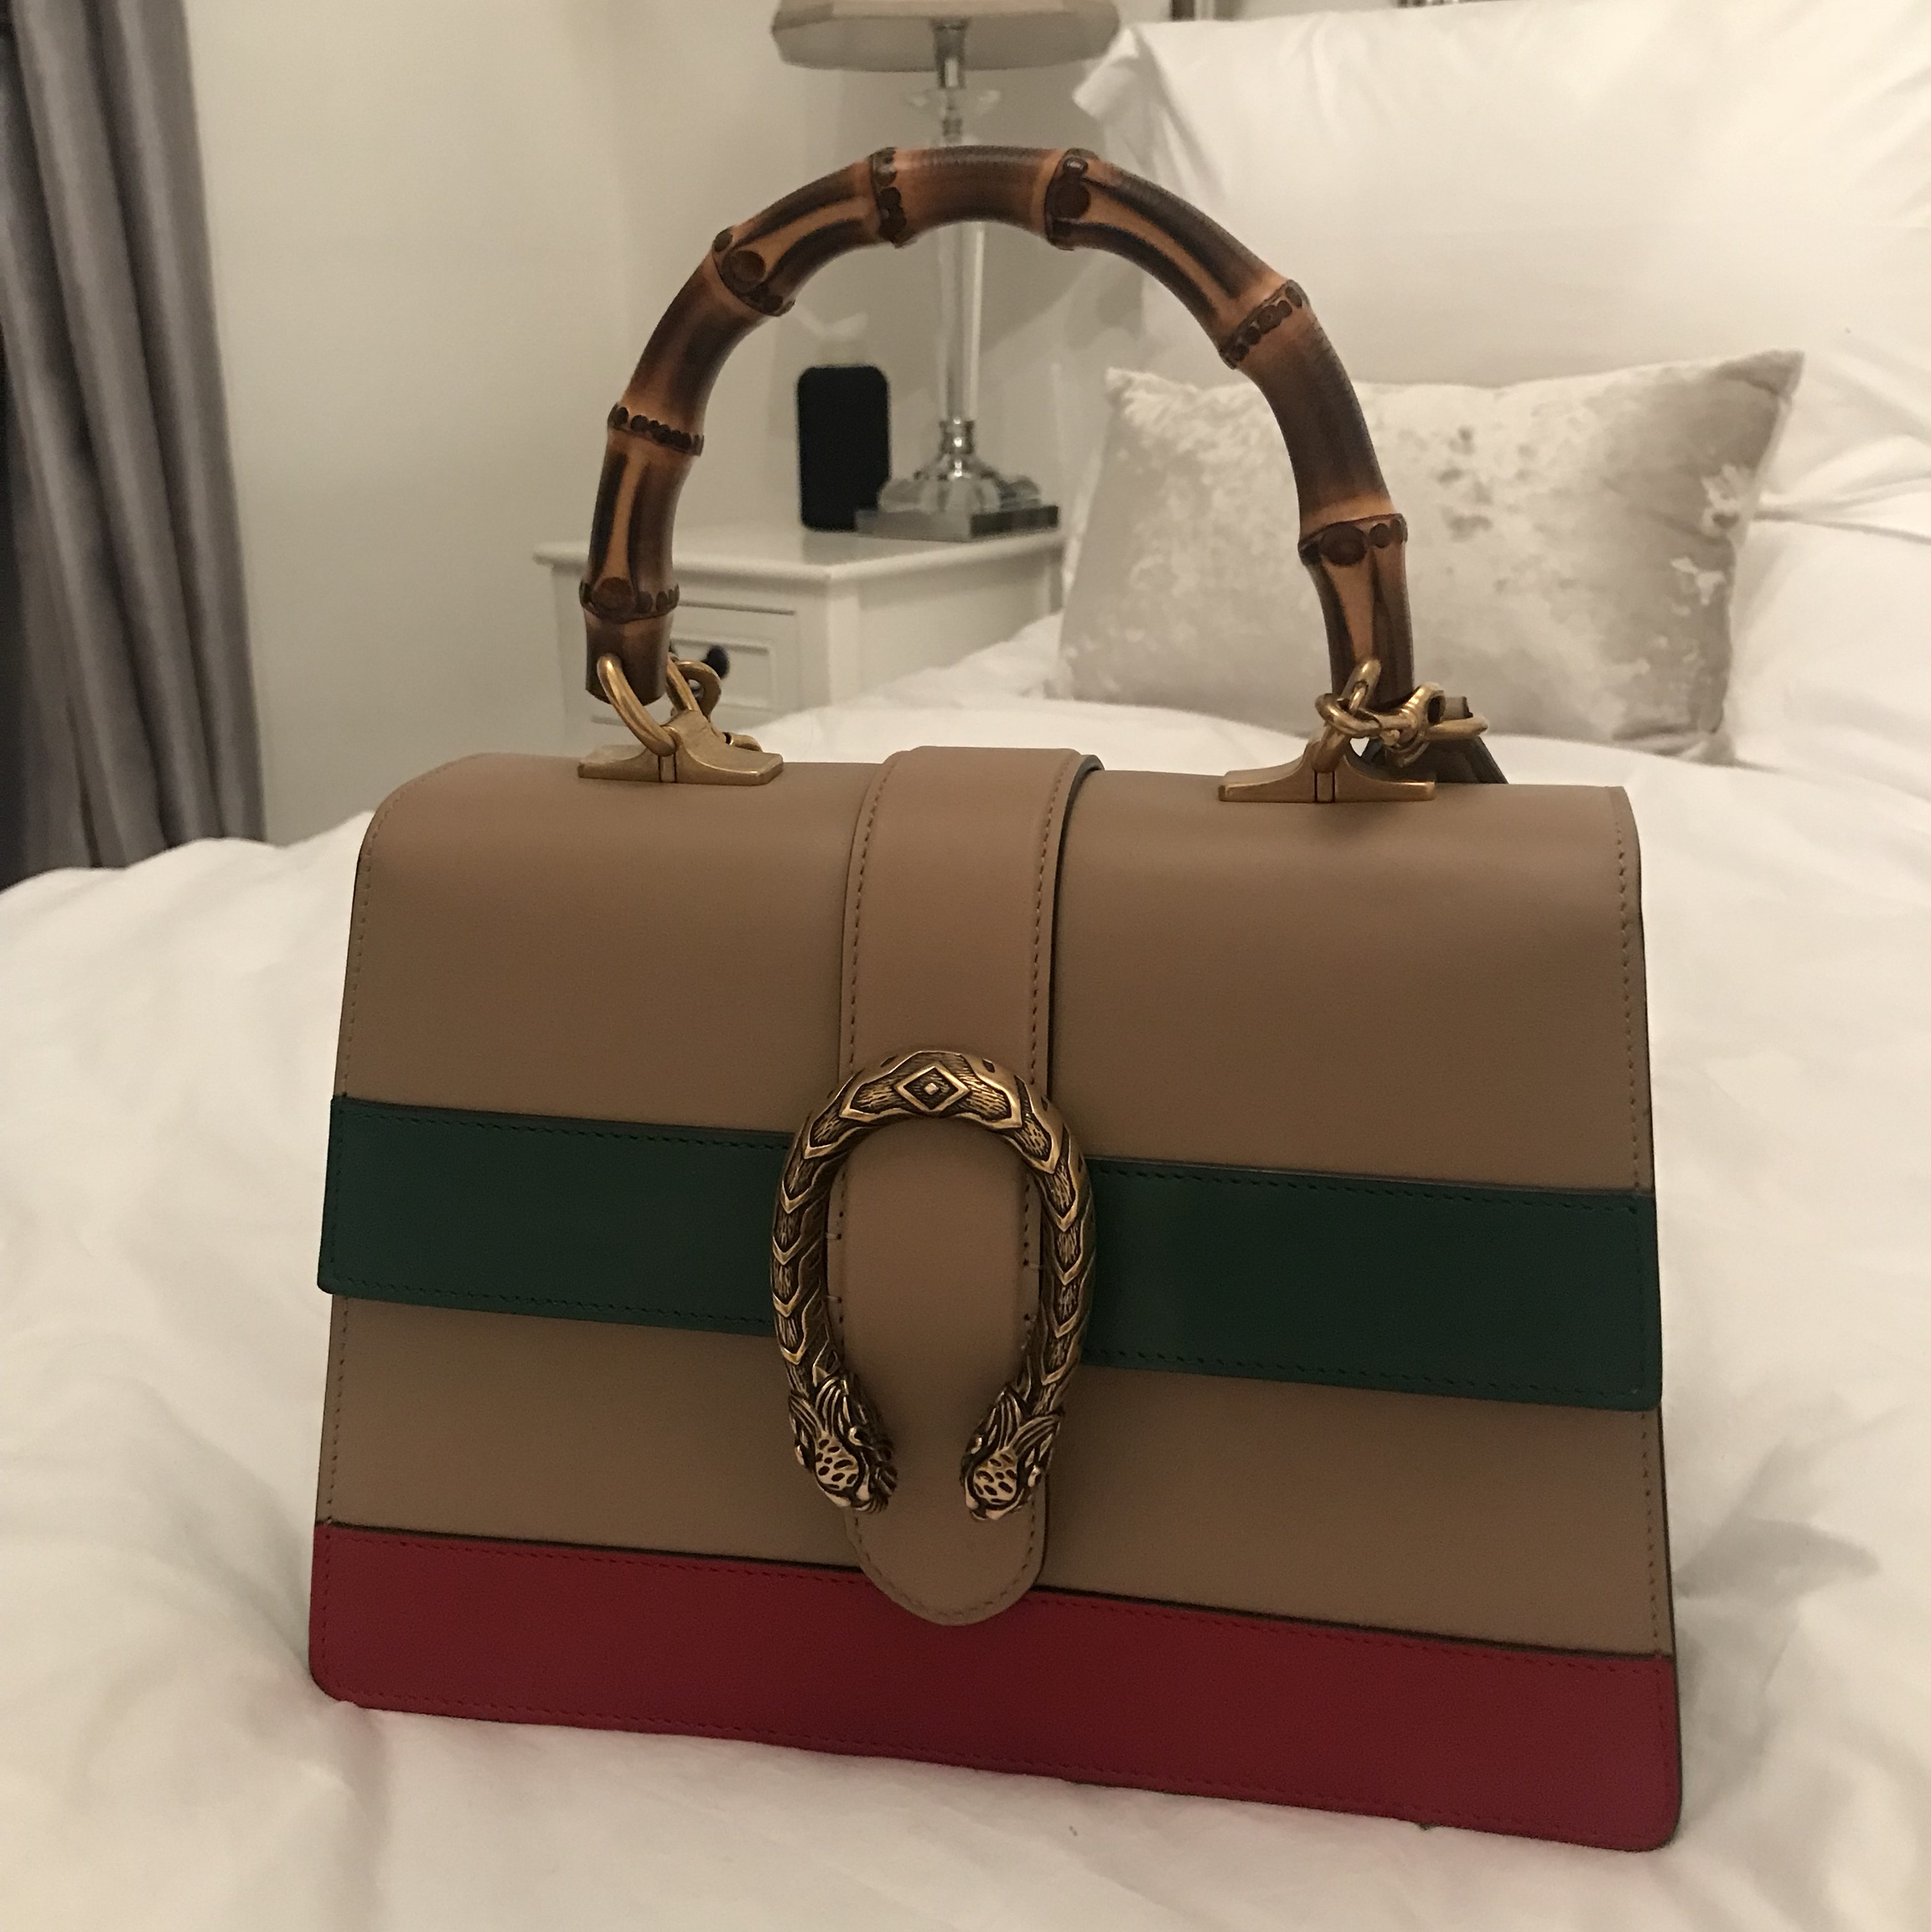 aa0d24bee lydiaemillen. Milton Keynes, United Kingdom. GUCCI DIONYSUS BAMBOO HANDLE  SIZE SMALL IMMACULATE CONDITION ...